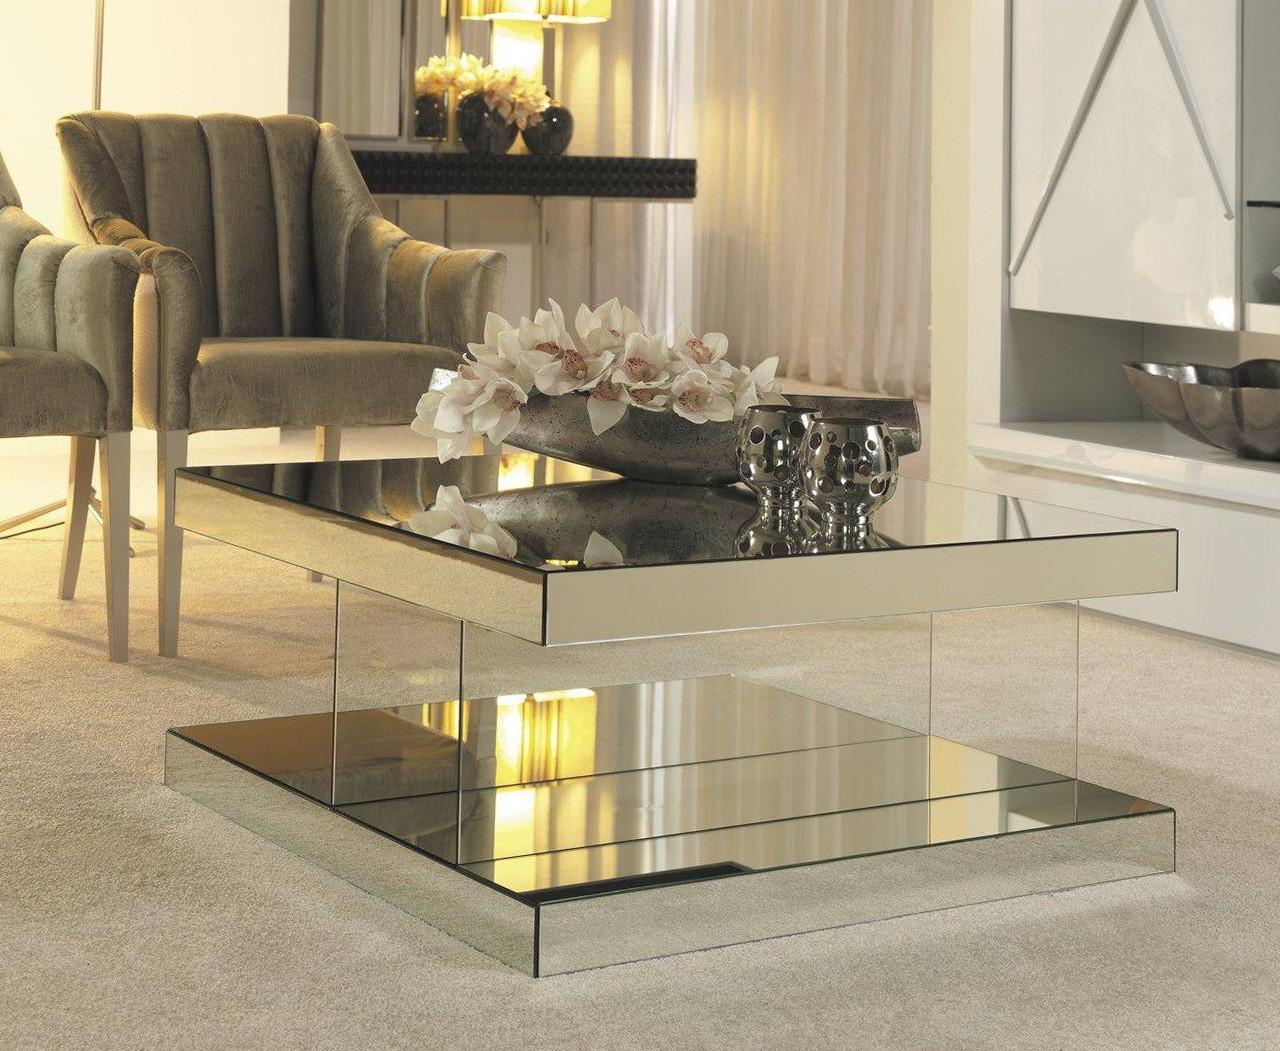 Mirrored Coffee Table Design Photos